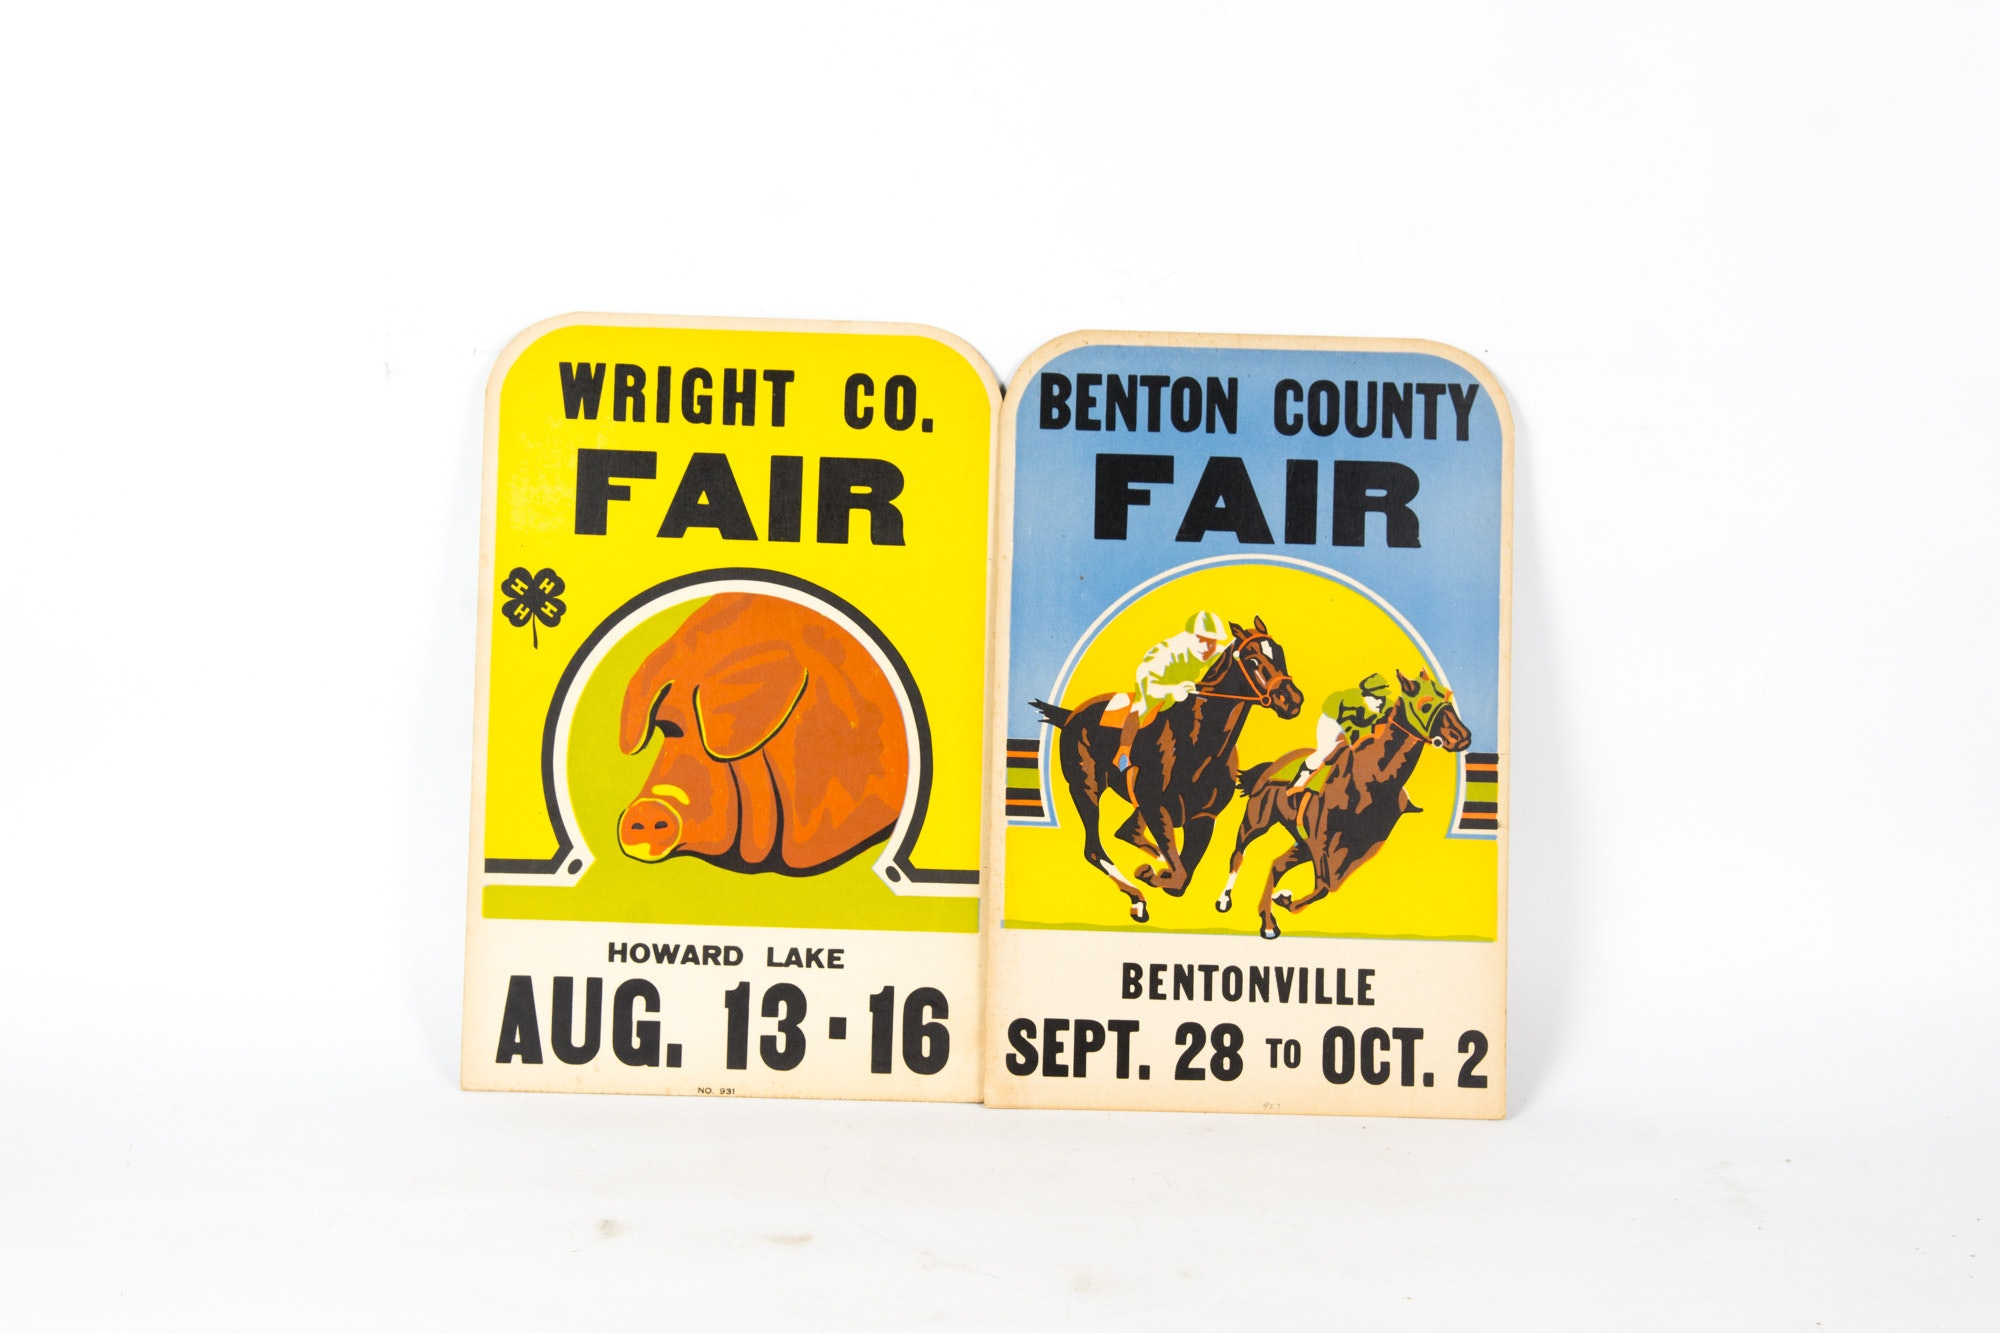 Two Vintage County Fair Advertisements